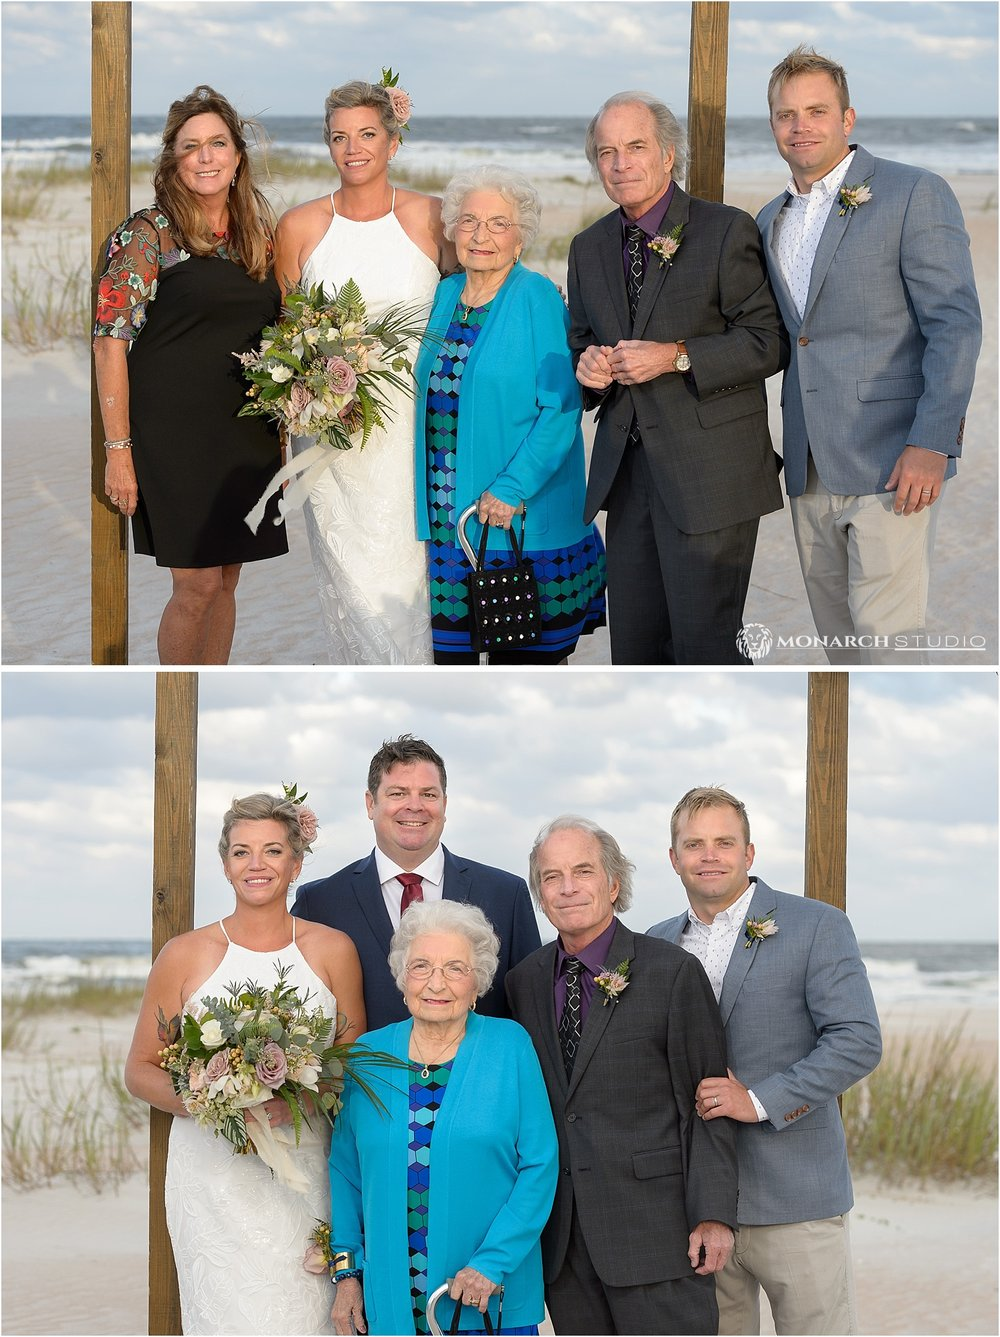 st-augustine-beach-wedding-photographer-048.jpg